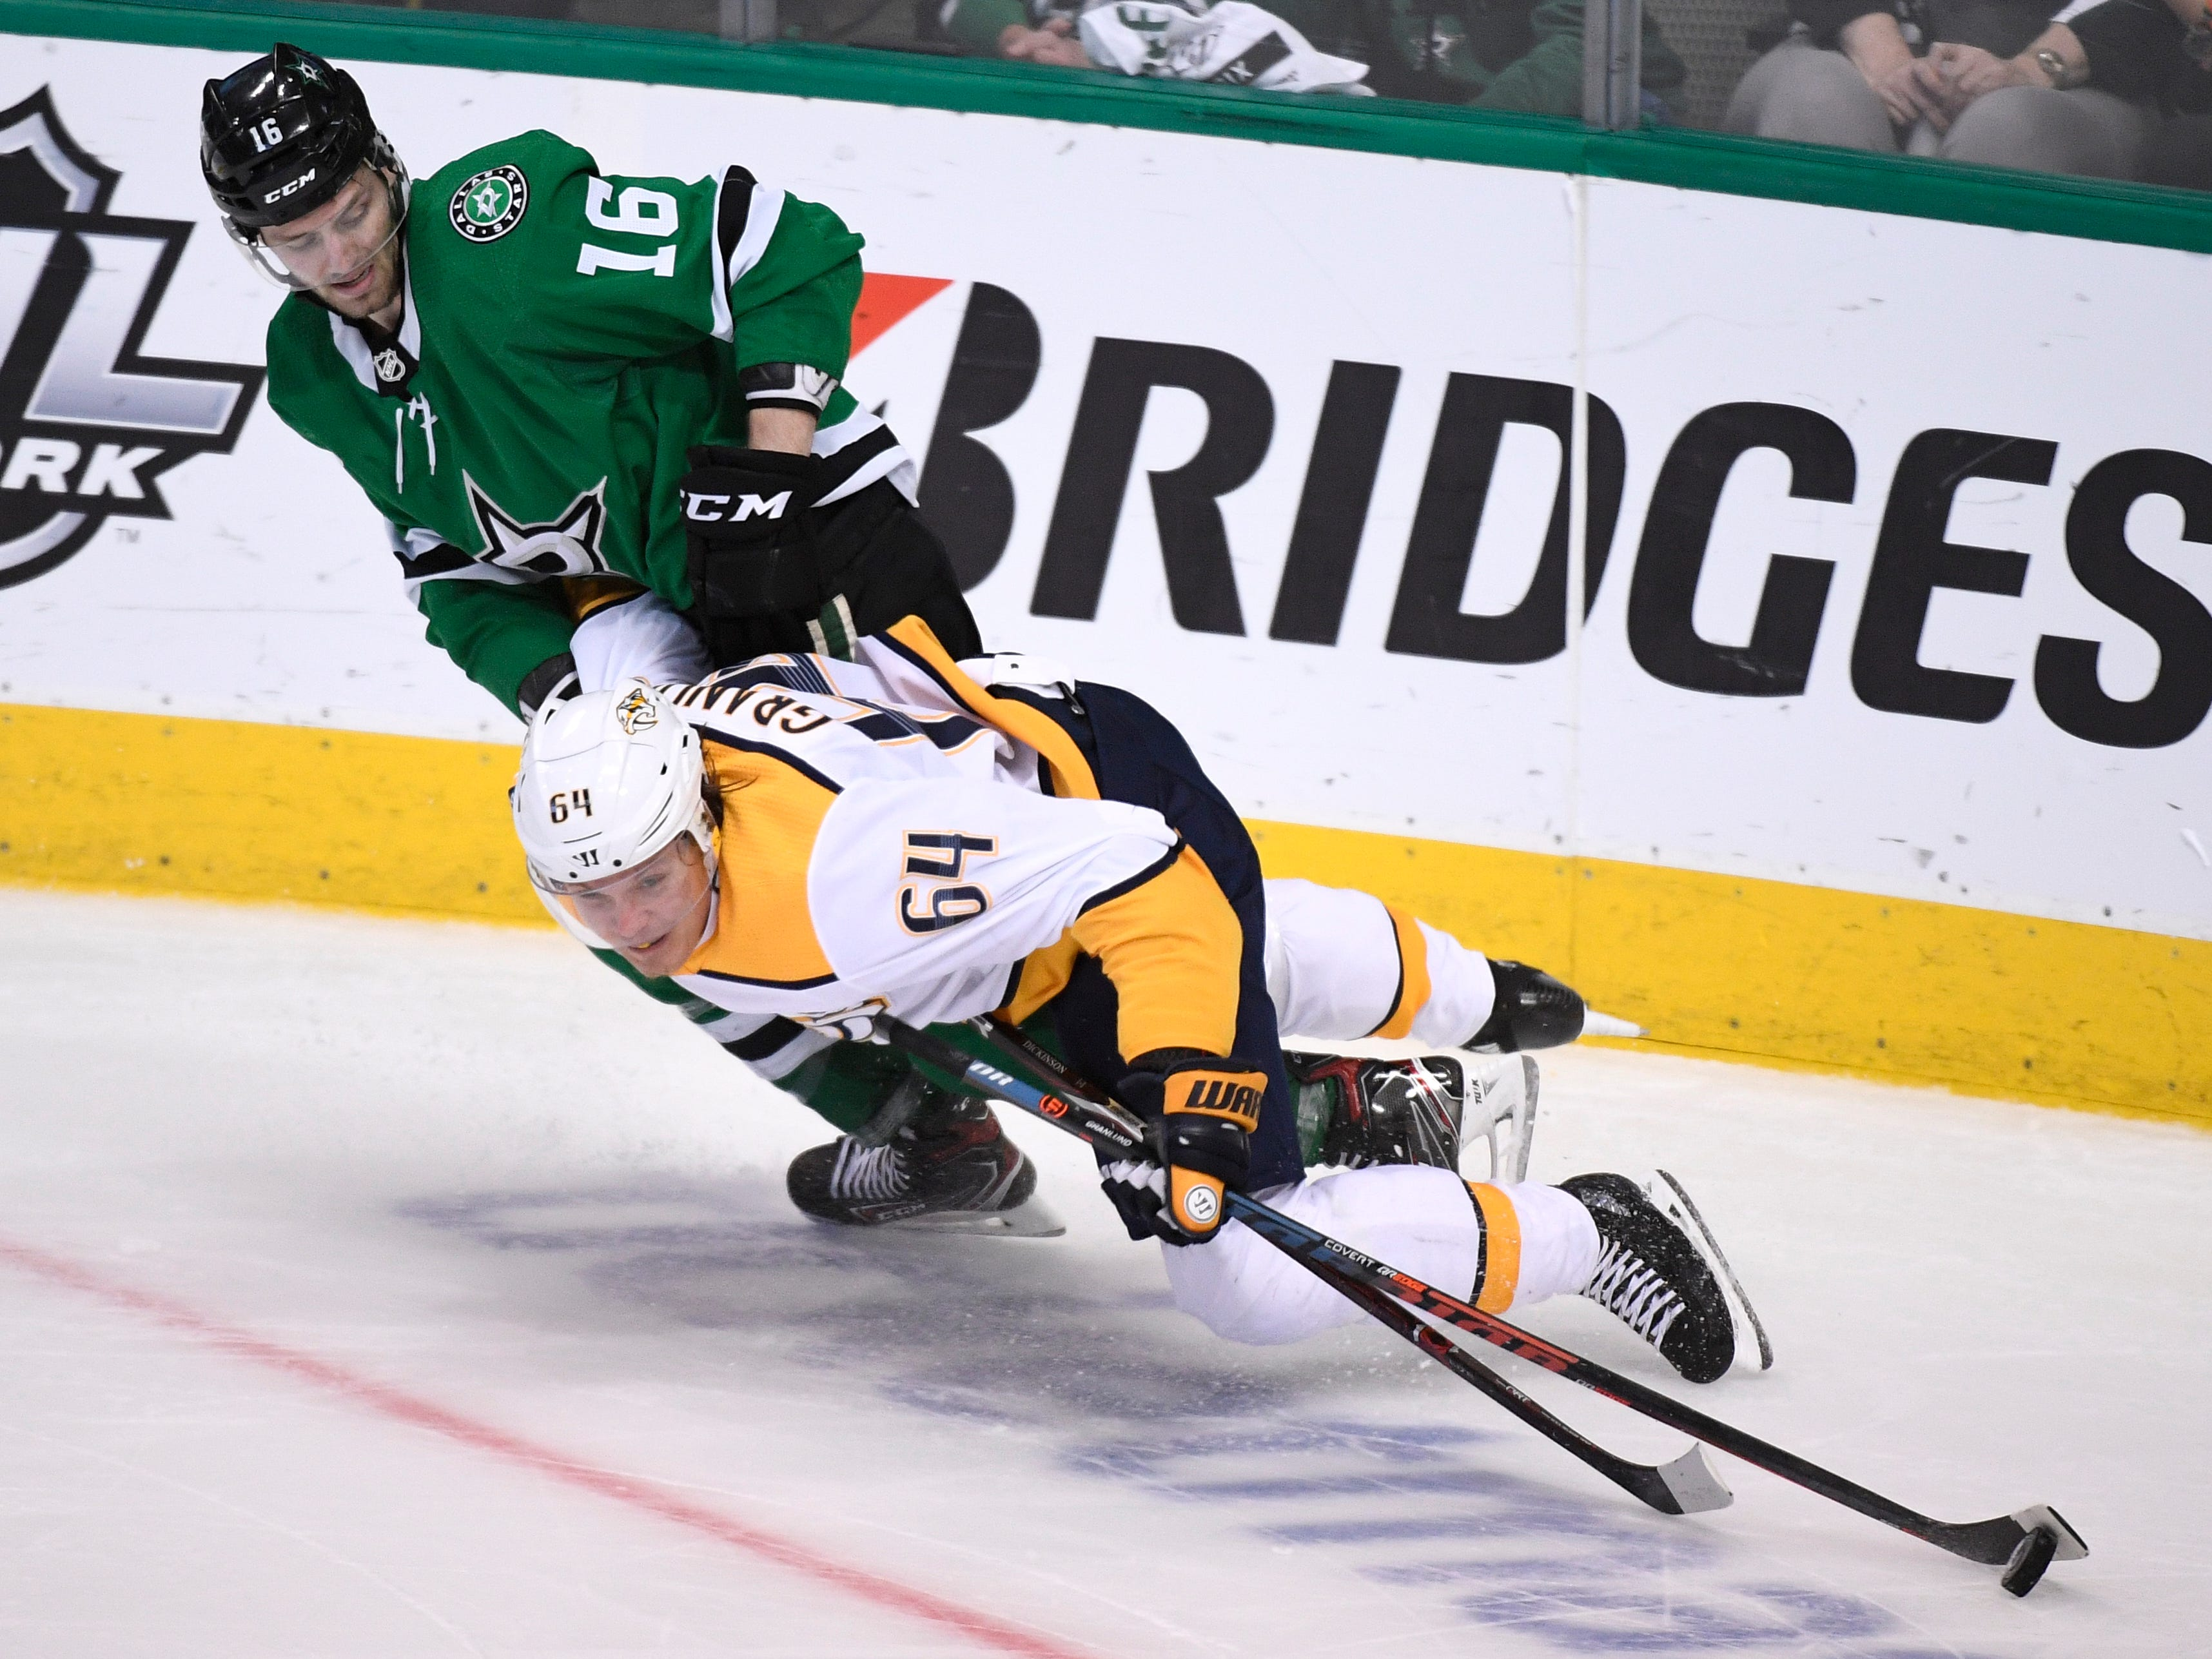 Nashville Predators center Mikael Granlund (64) moves the puck defended by Dallas Stars center Jason Dickinson (16) during the third period of the divisional semifinal game at the American Airlines Center in Dallas, Texas, Monday, April 22, 2019.